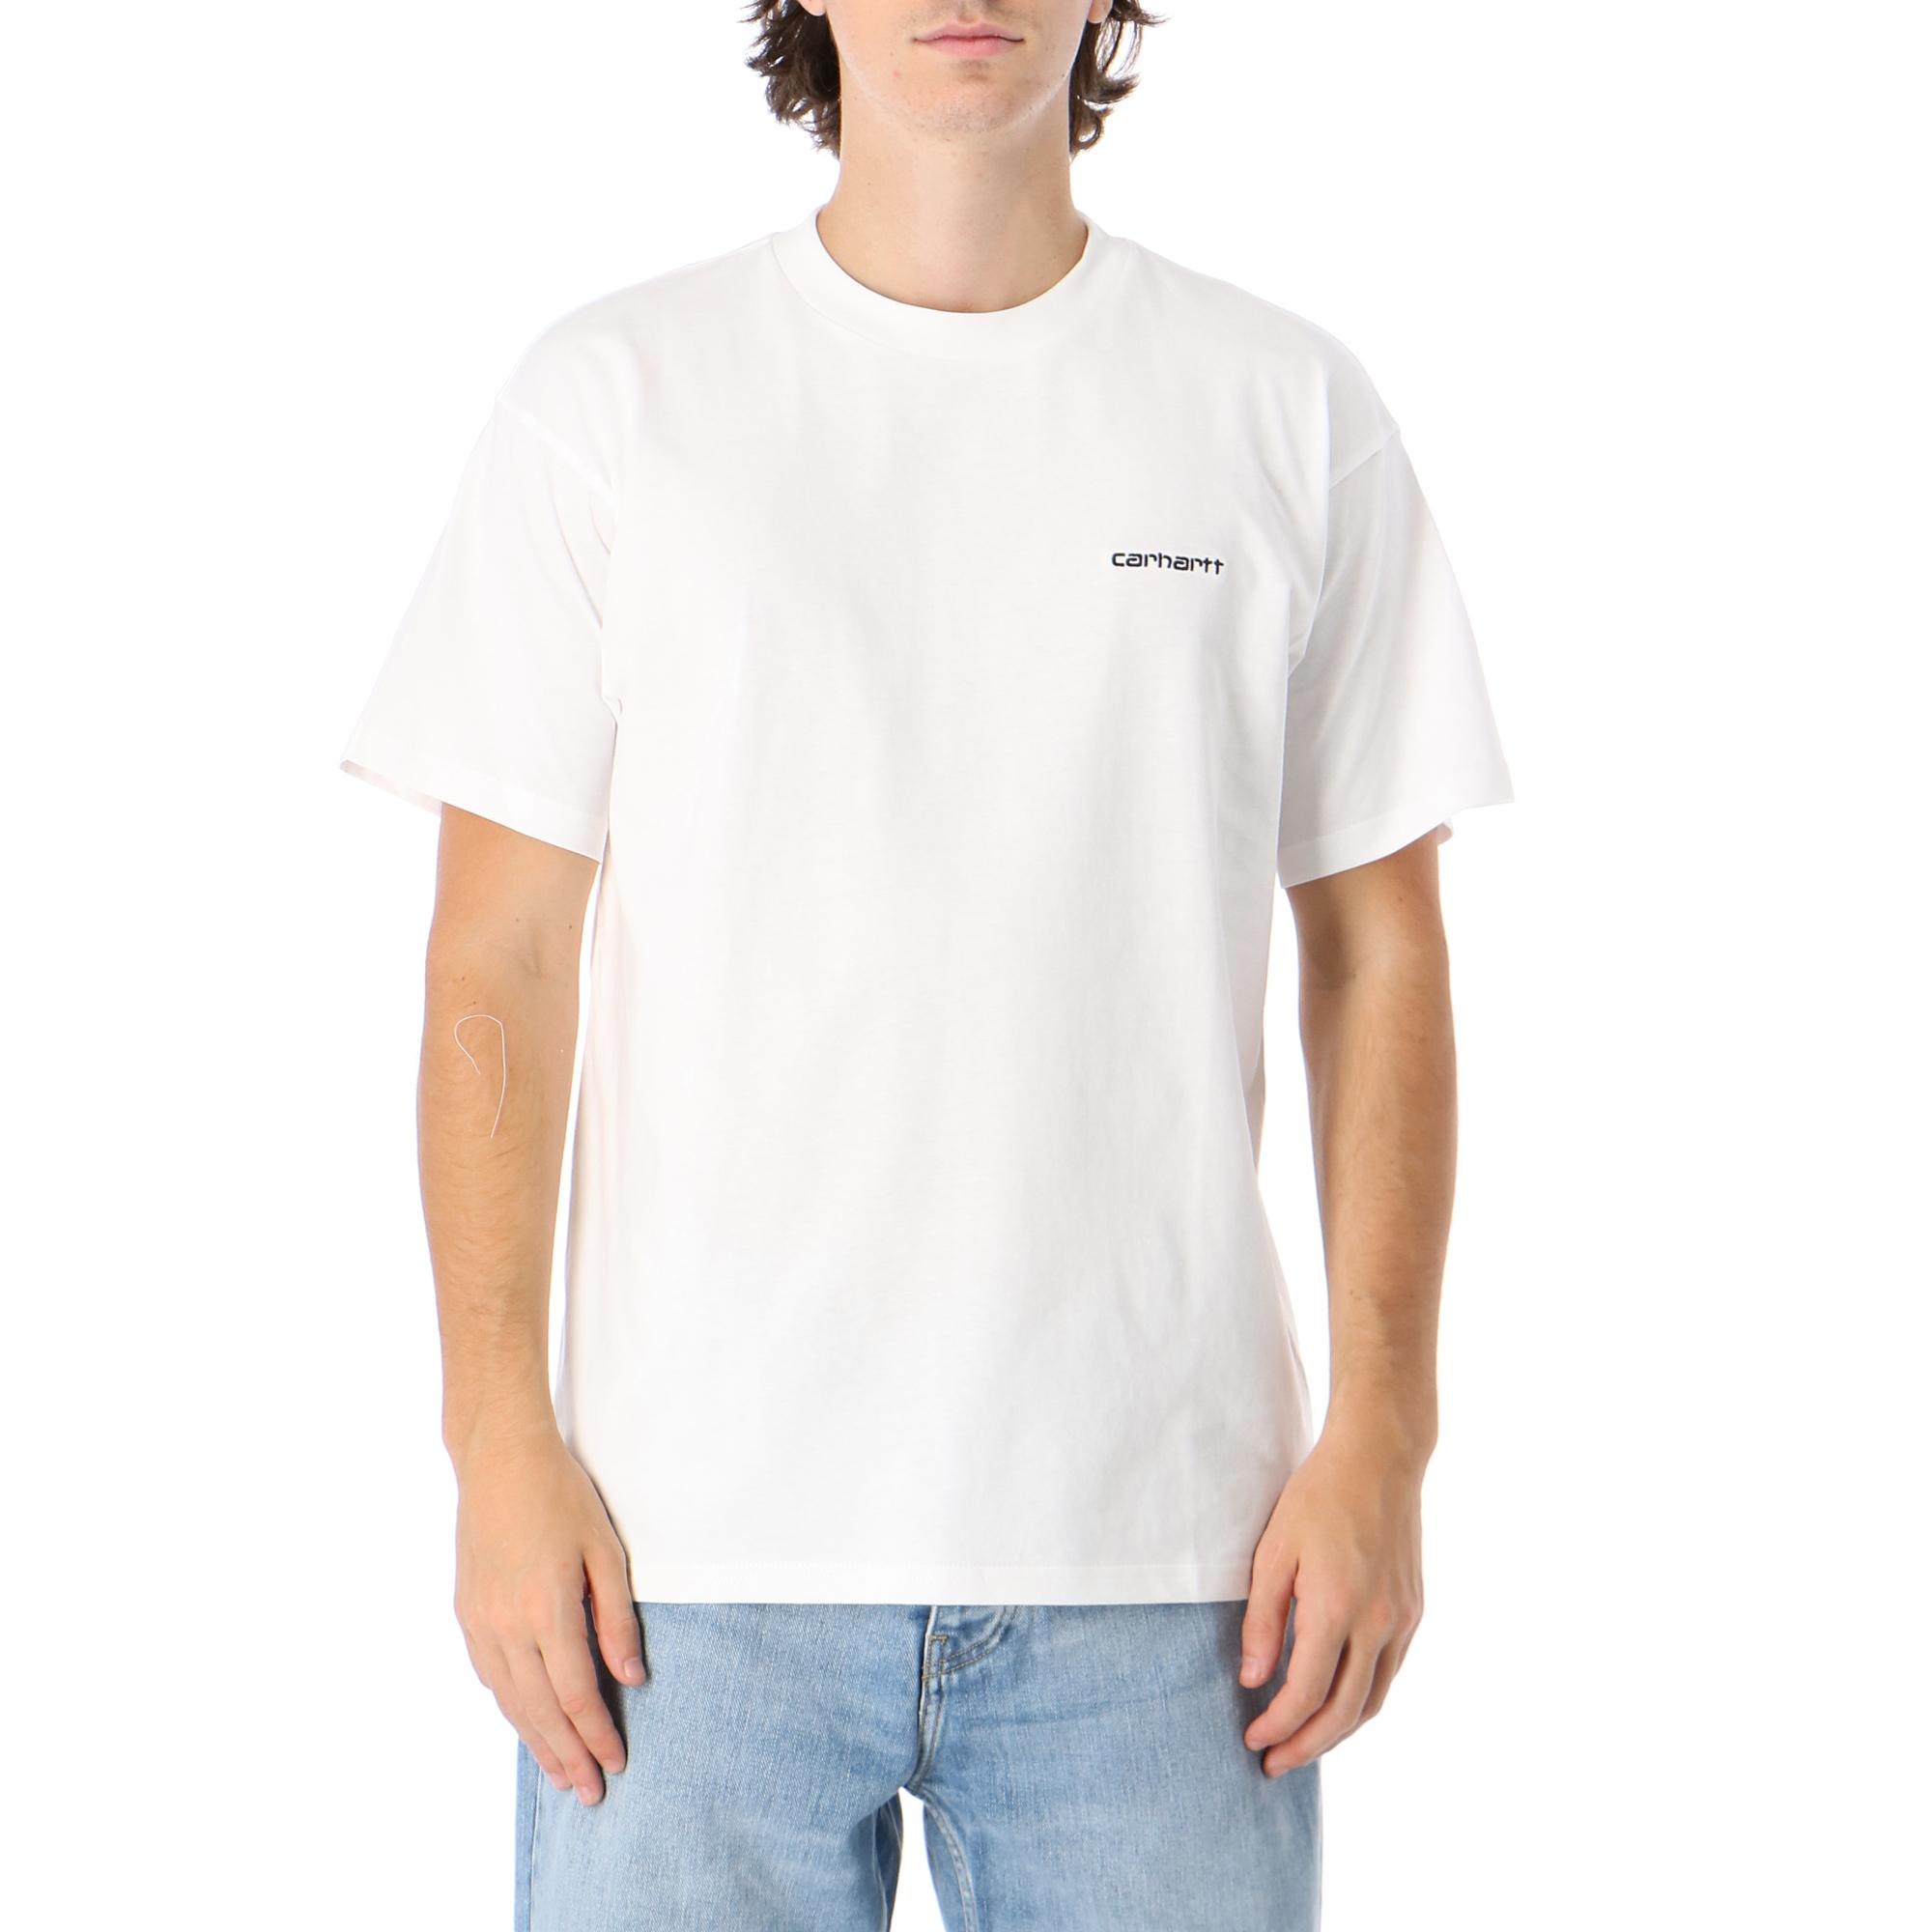 Carhartt S/s Script Embroidery T-shirt White black